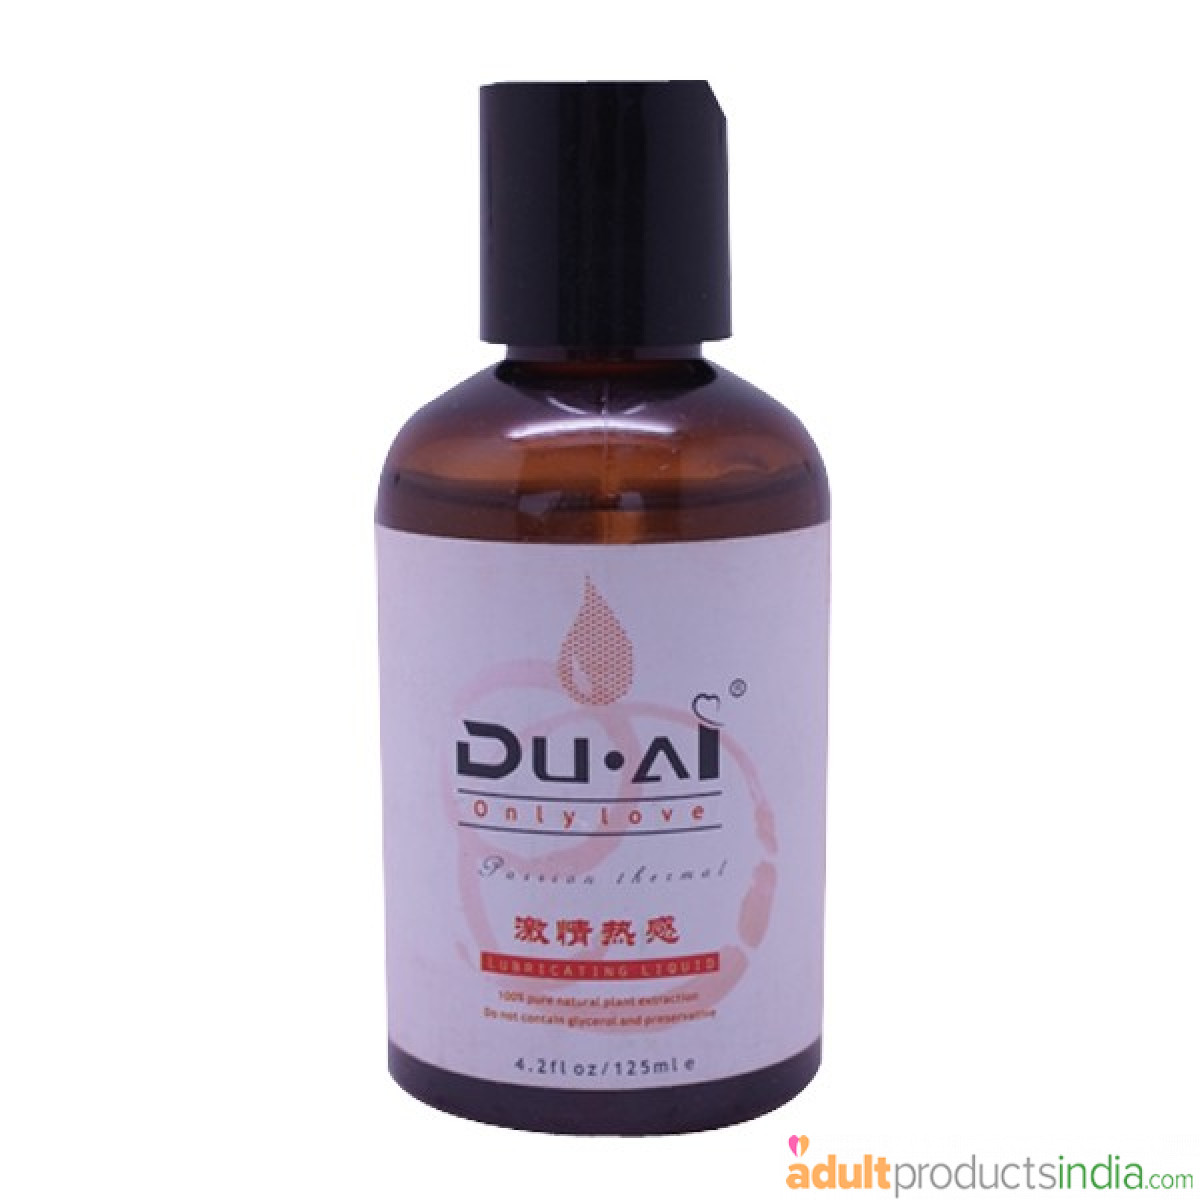 Du Ai Sex Lubricant - Passion Thermal